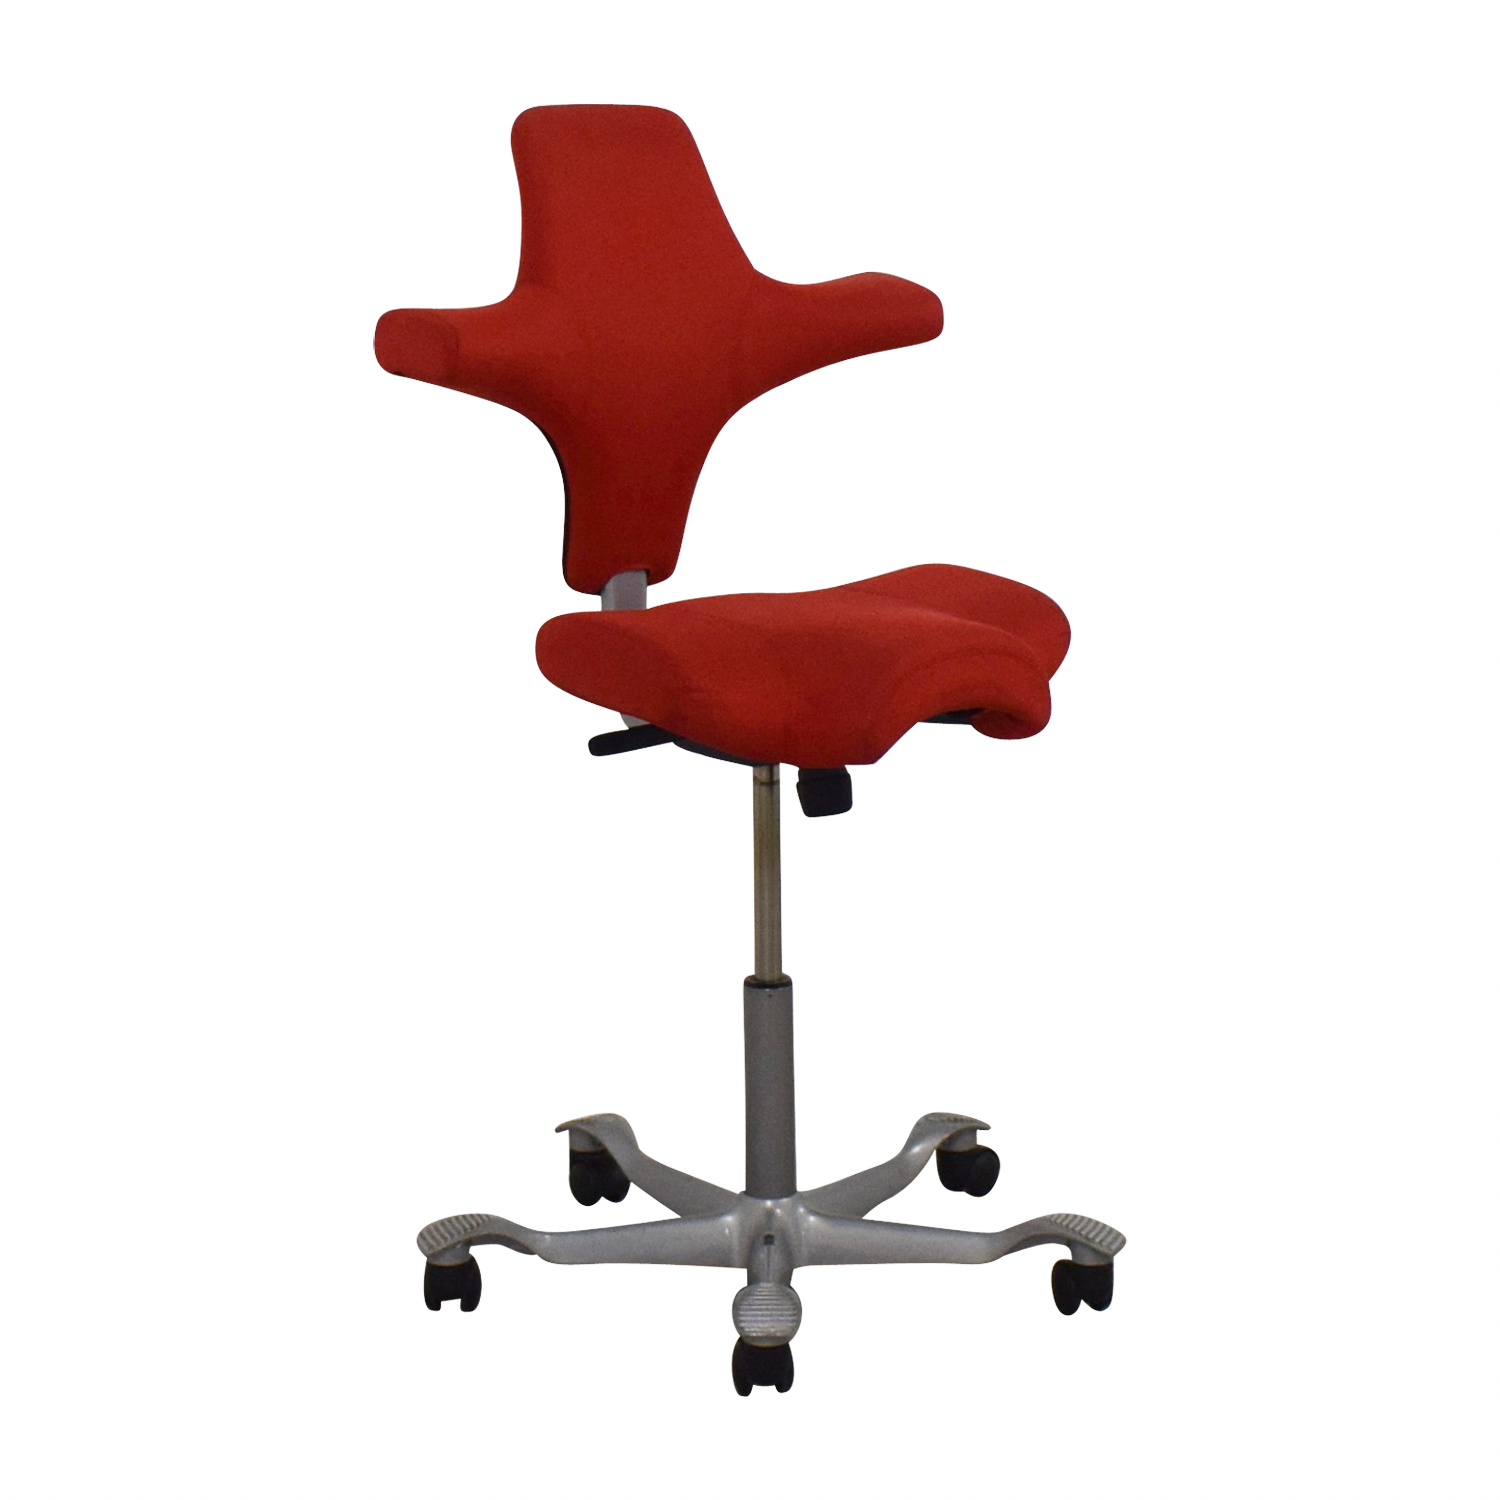 HAG HAG Capisco Chair for sale